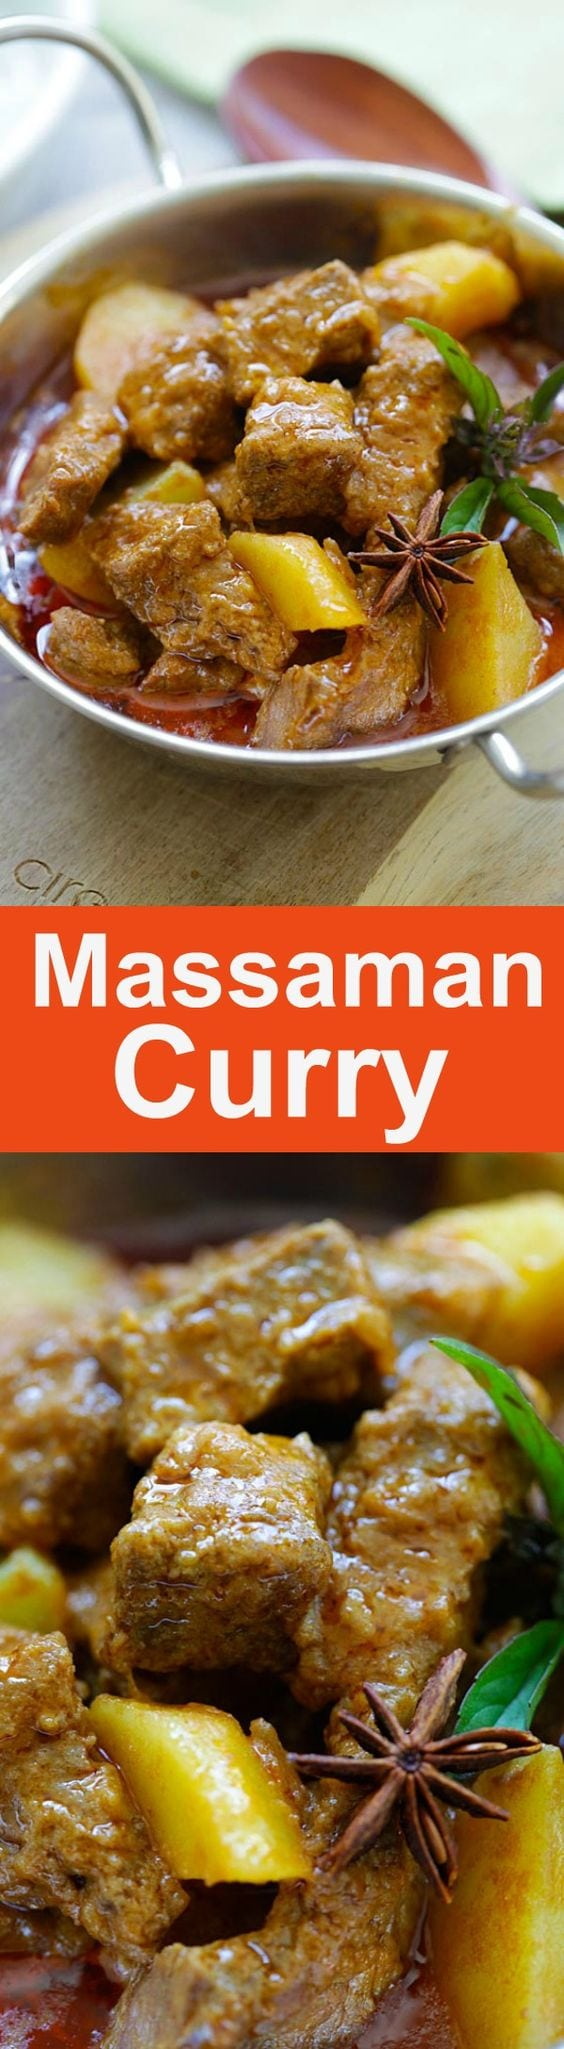 Beef Massaman Curry - crazy delicious Thai beef massaman curry. Learn how to make massaman curry with this easy and fail-proof recipe | rasamalaysia.com